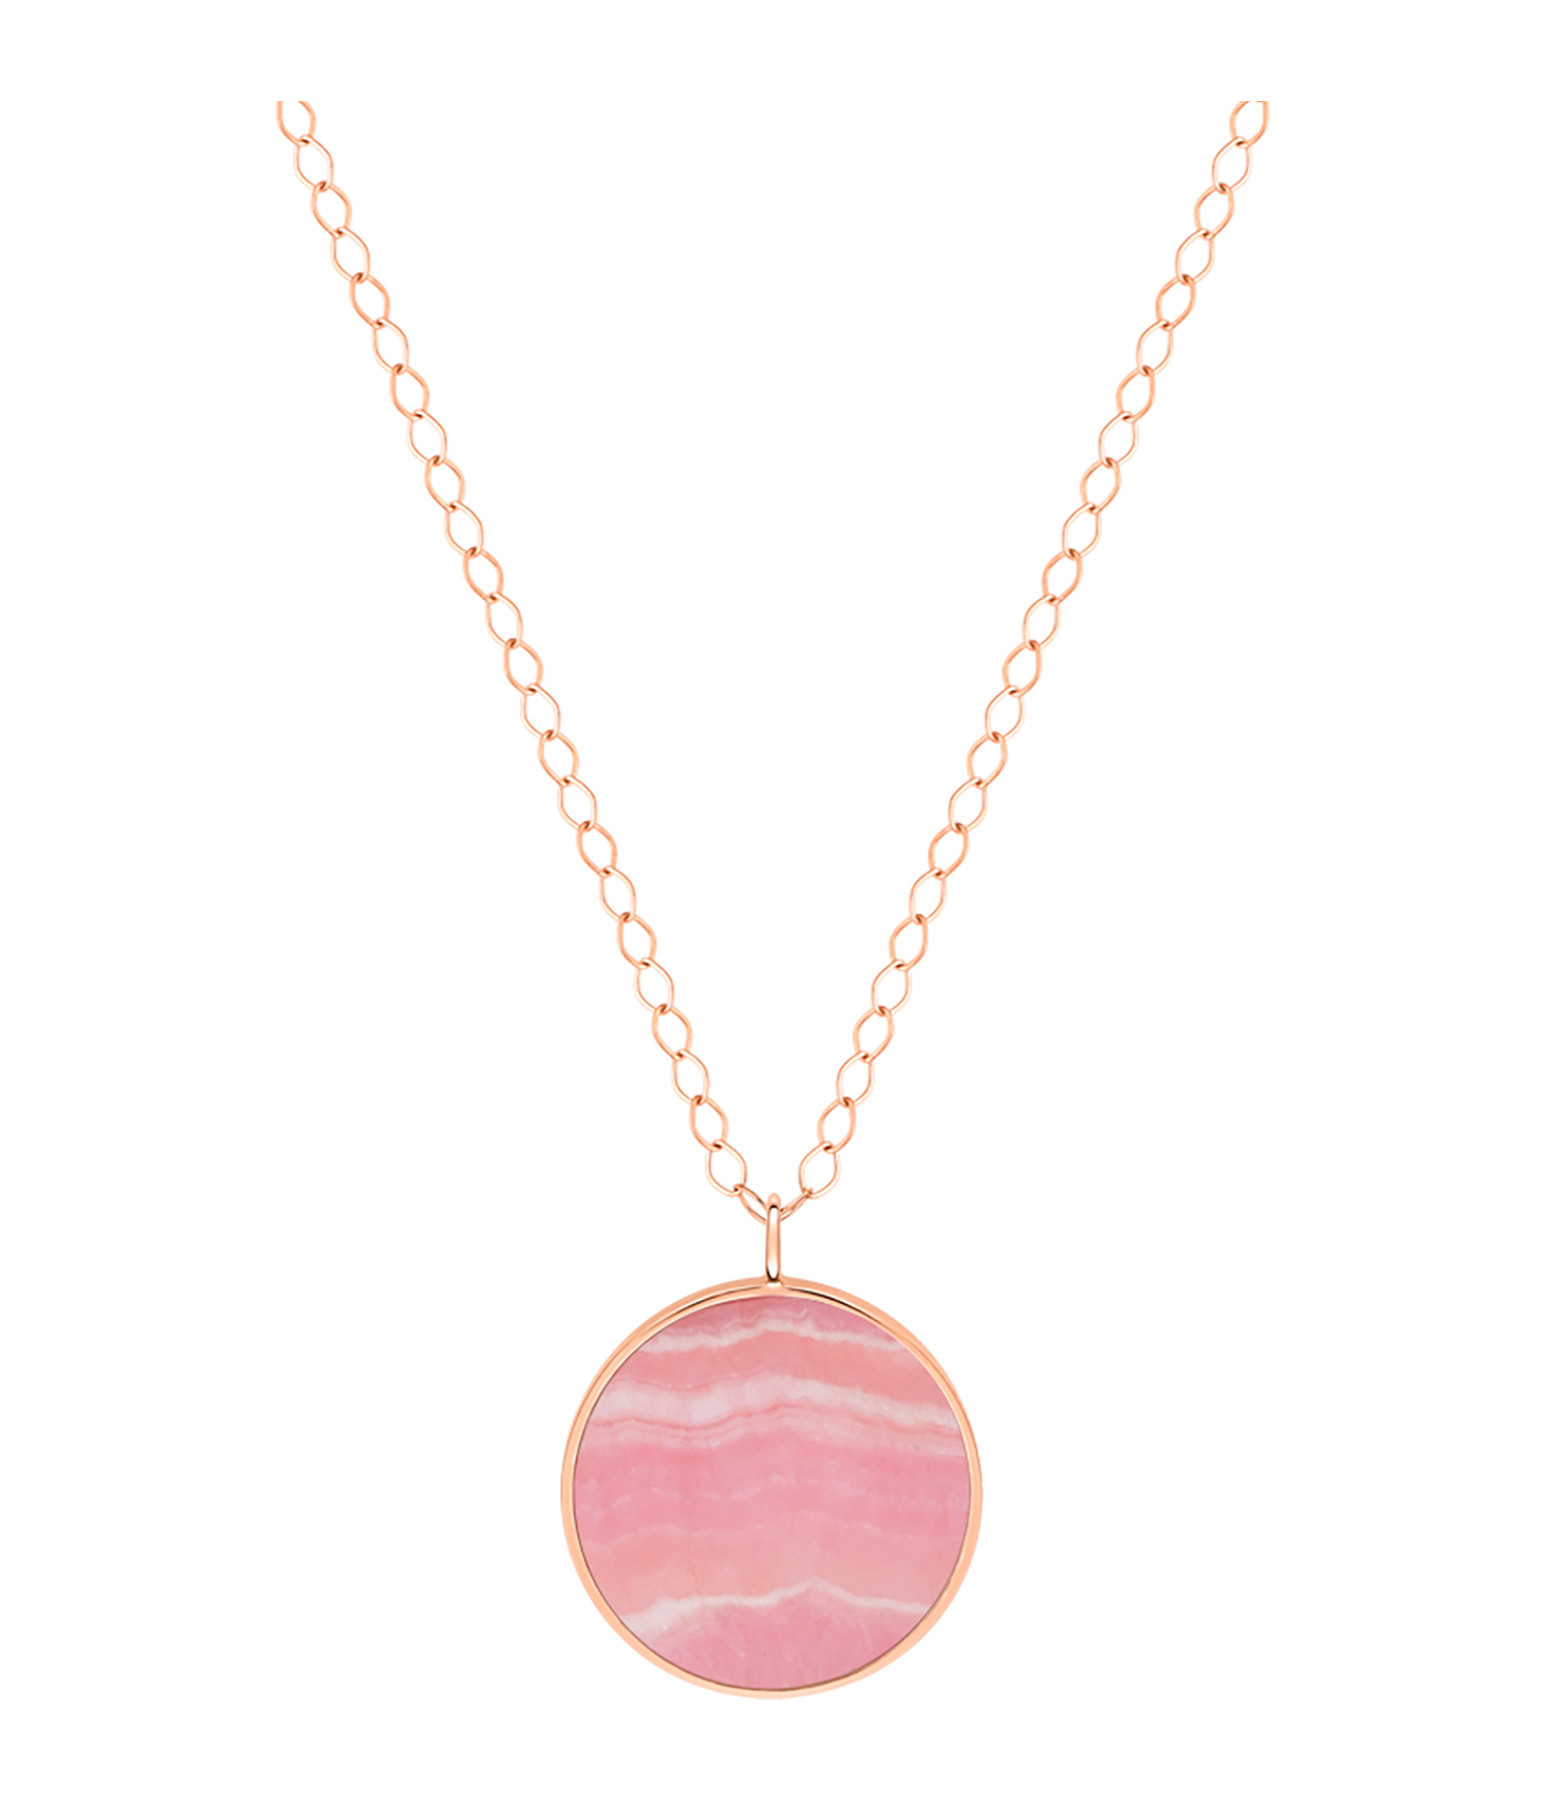 GINETTE NY - Collier Ever Disc JumBoucle d'oreille Or Rose Rhodocrosite